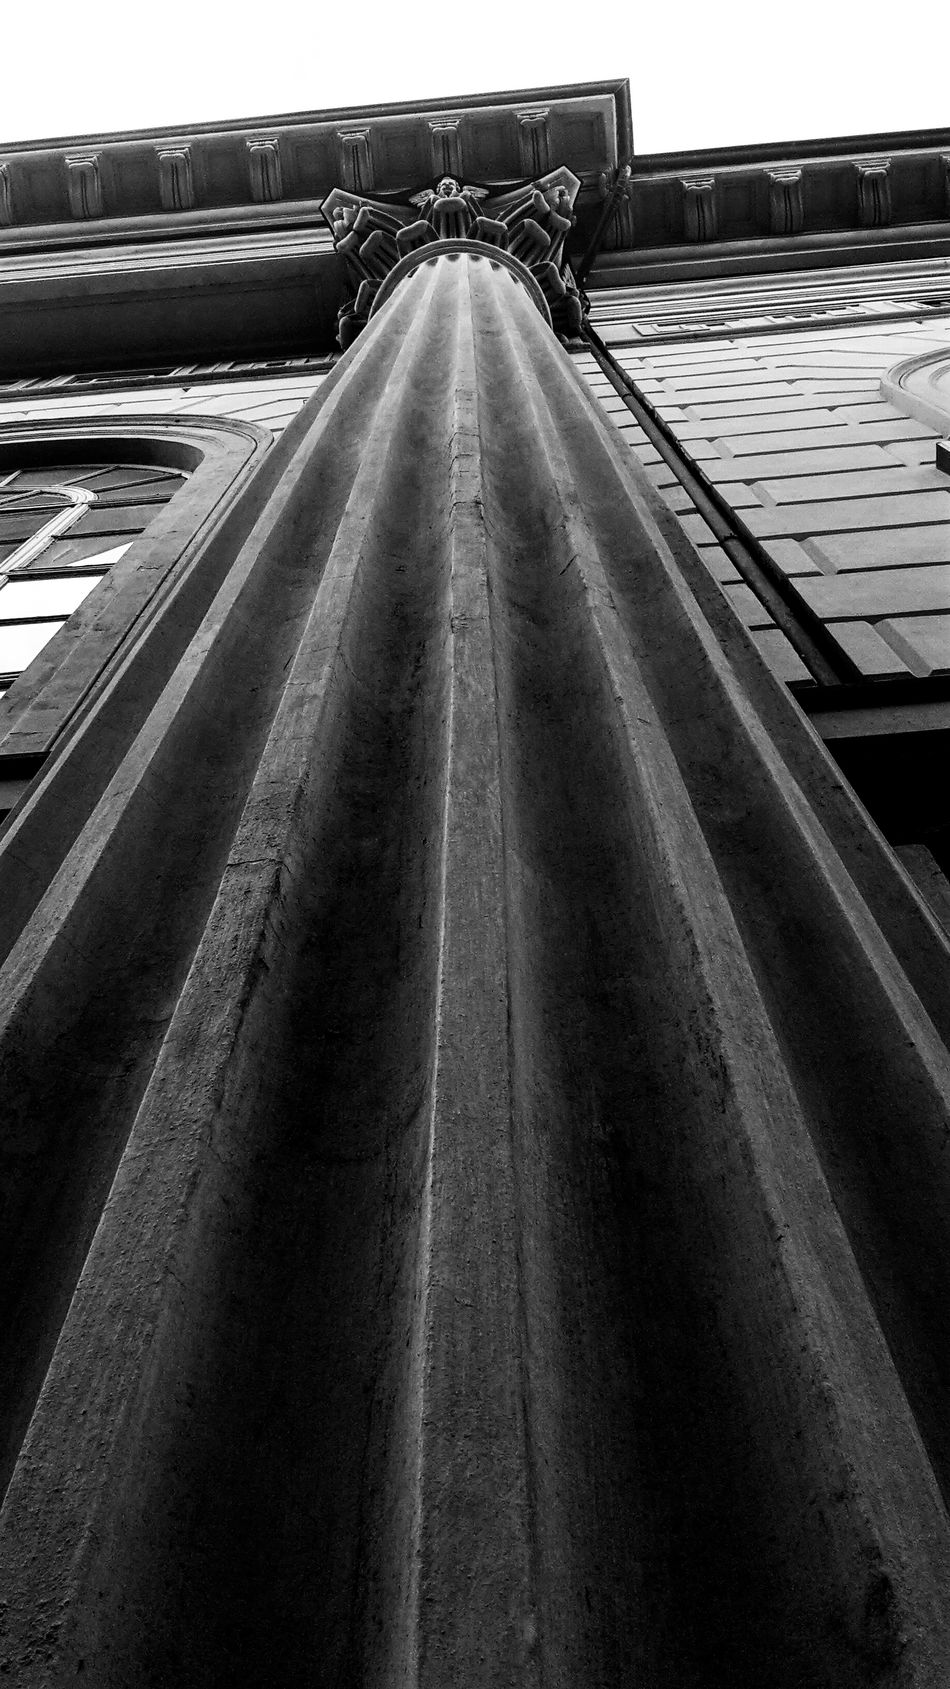 Column Capitals Column Church Black And White Photography Black And White Church Architecture Architecture Structures And Architecture Looking Up My City Walking Around The City  Cloudy Day